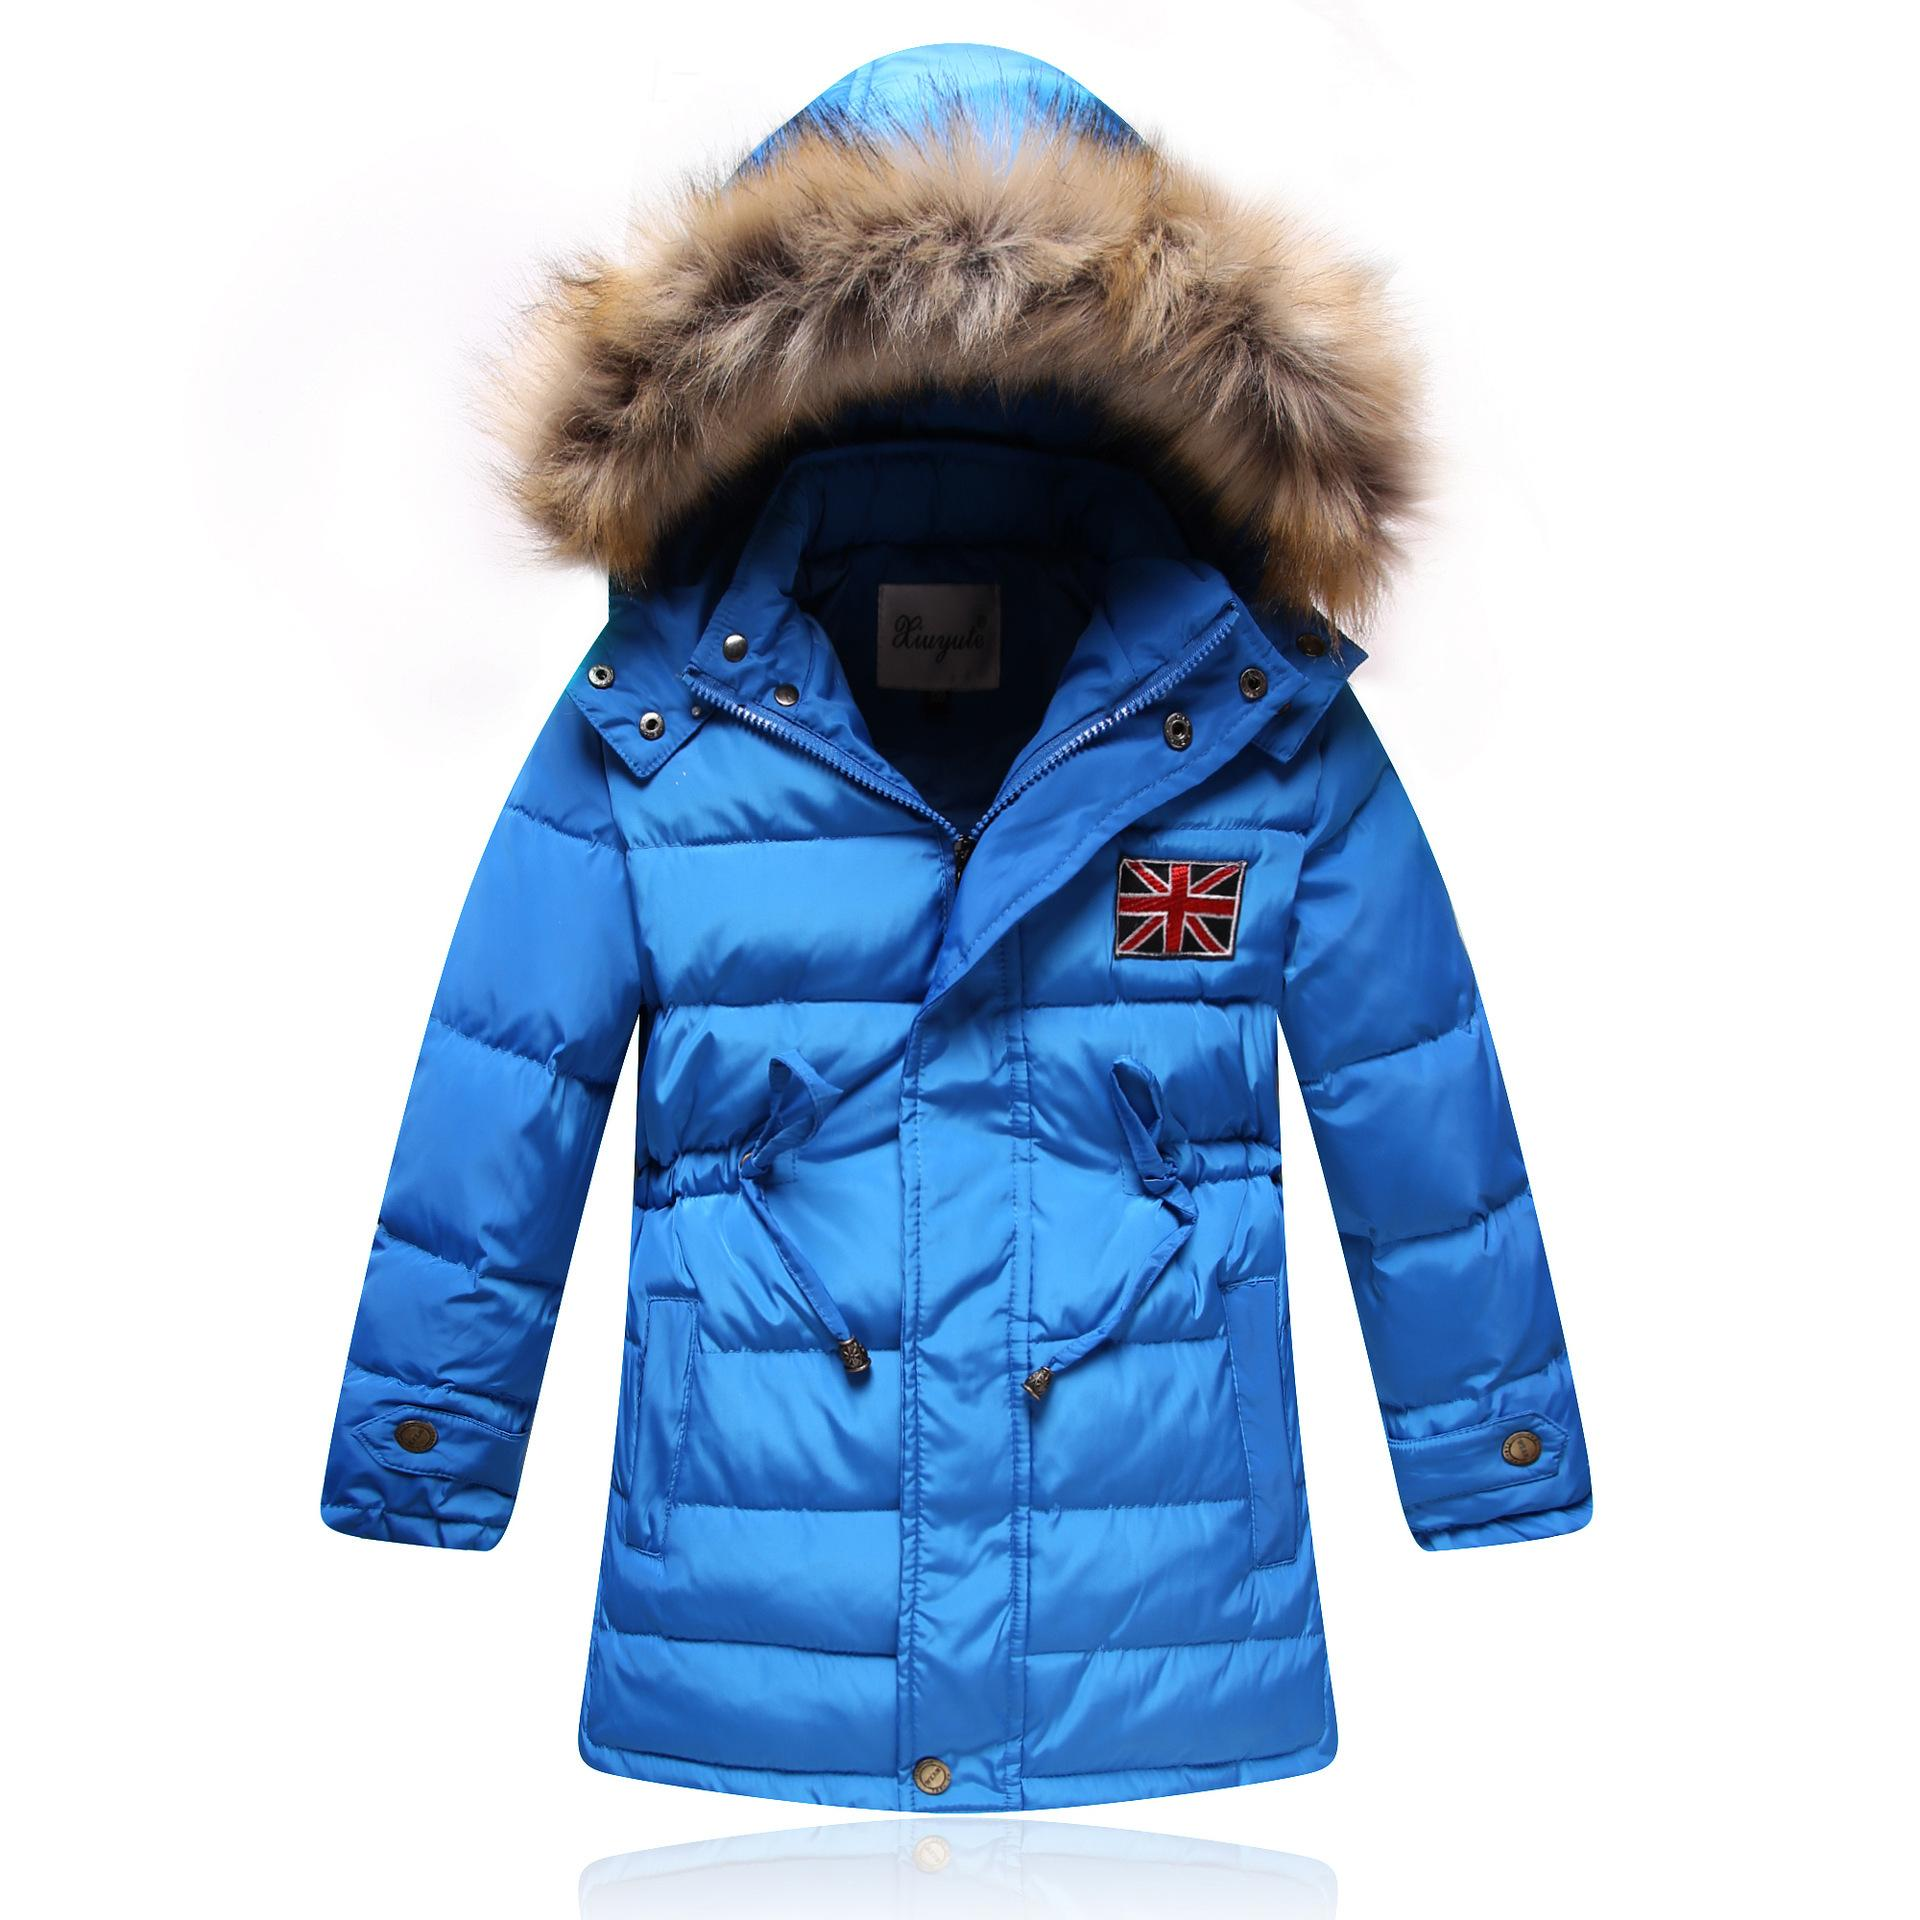 Find great deals on eBay for kids winter coat. Shop with confidence.